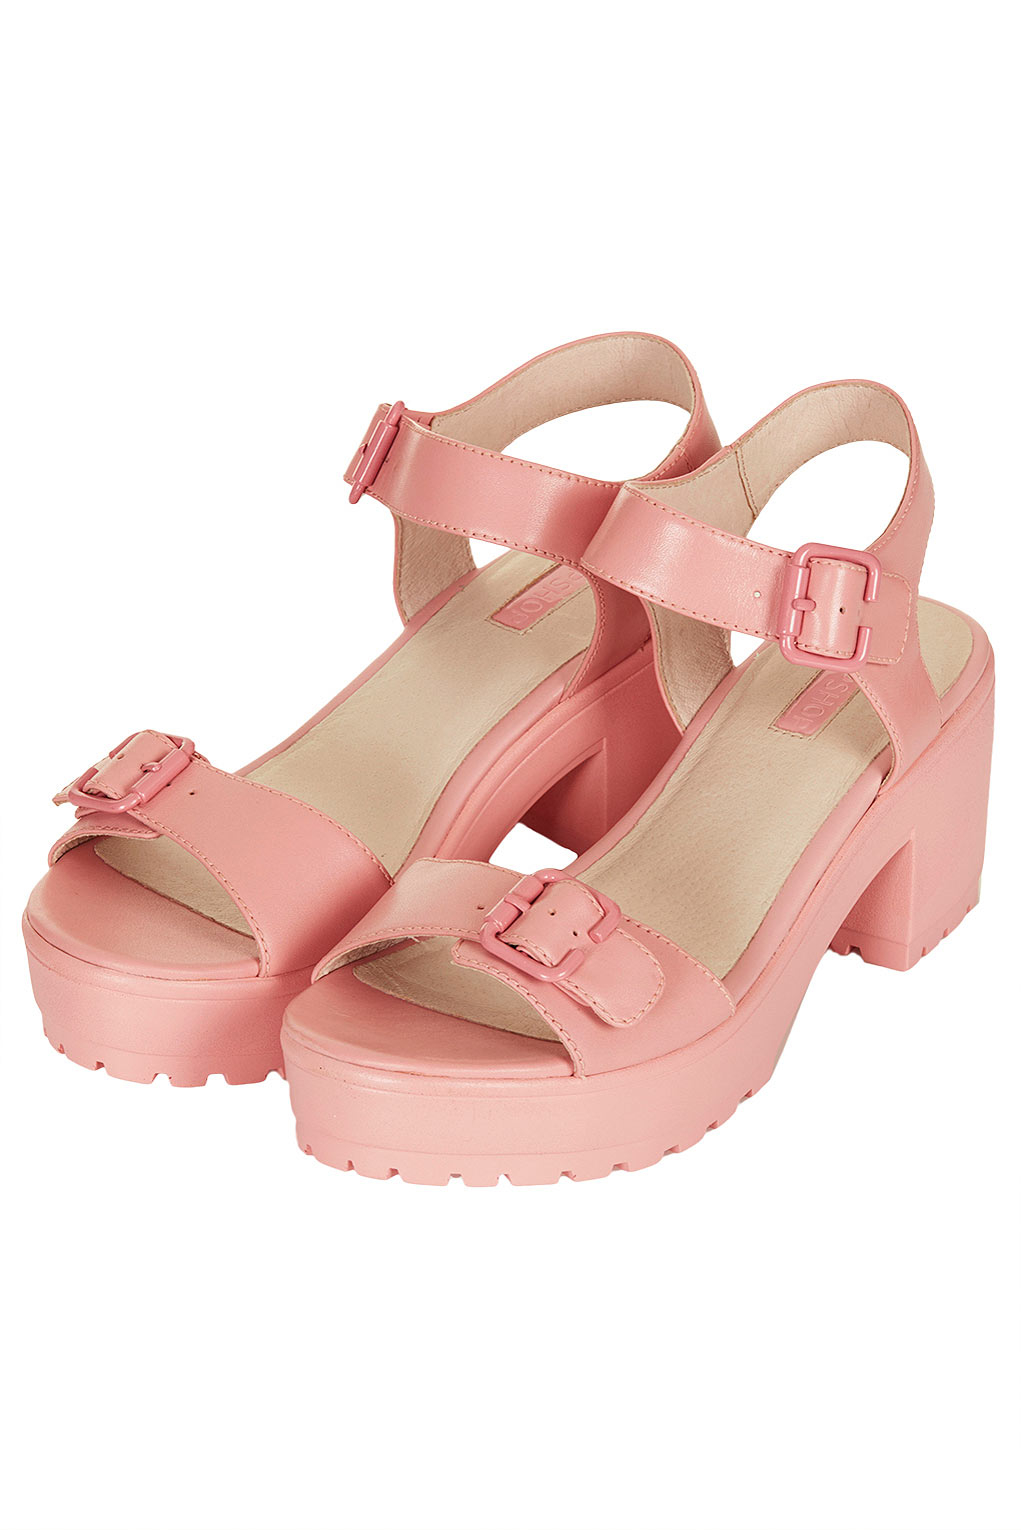 257206a2718 Lyst - TOPSHOP Womens Nation Two Part Chunky Sandals Pale Pink in Pink